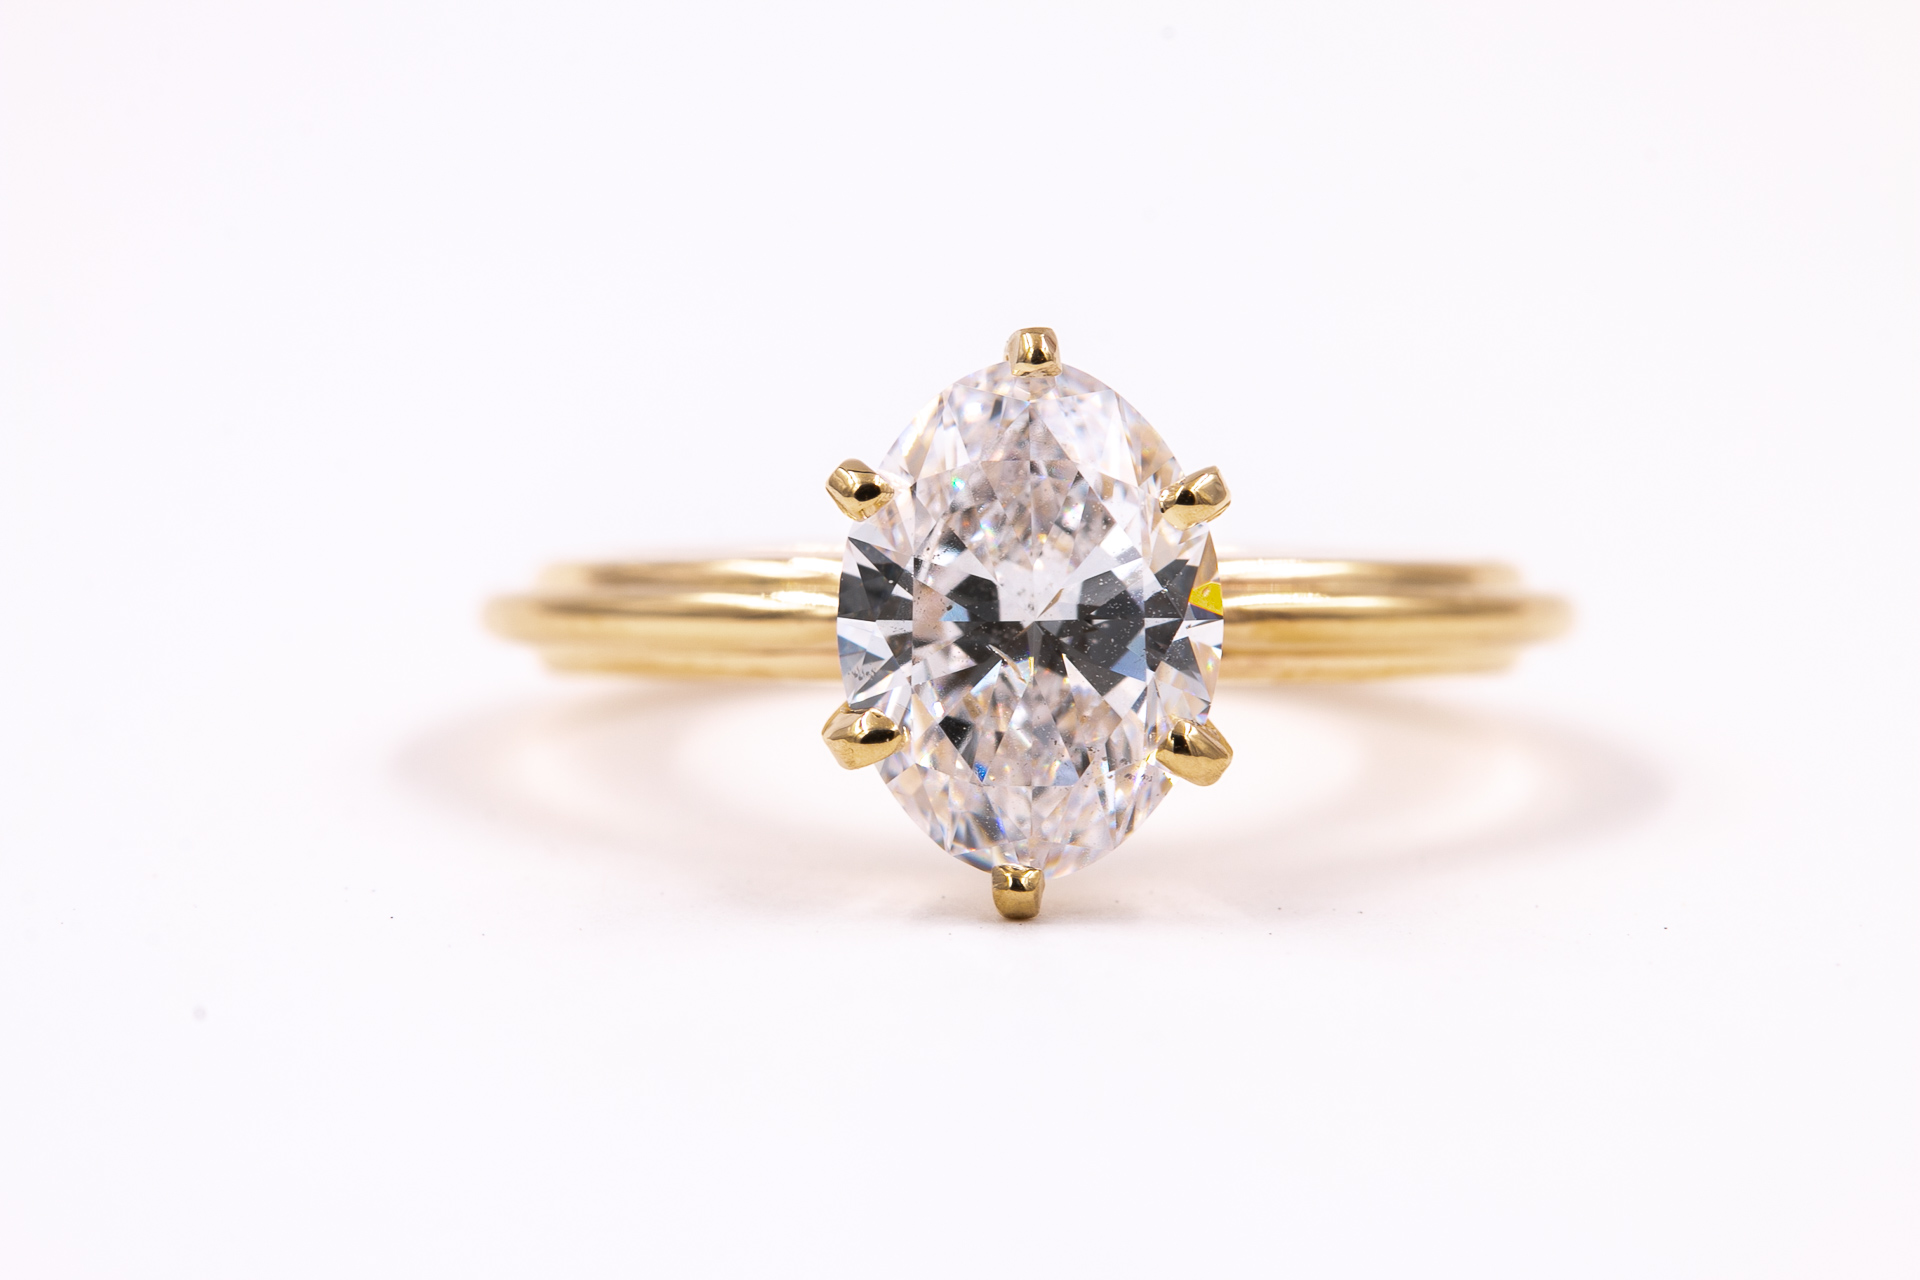 oval-solitaire-engagement-ring-gold-